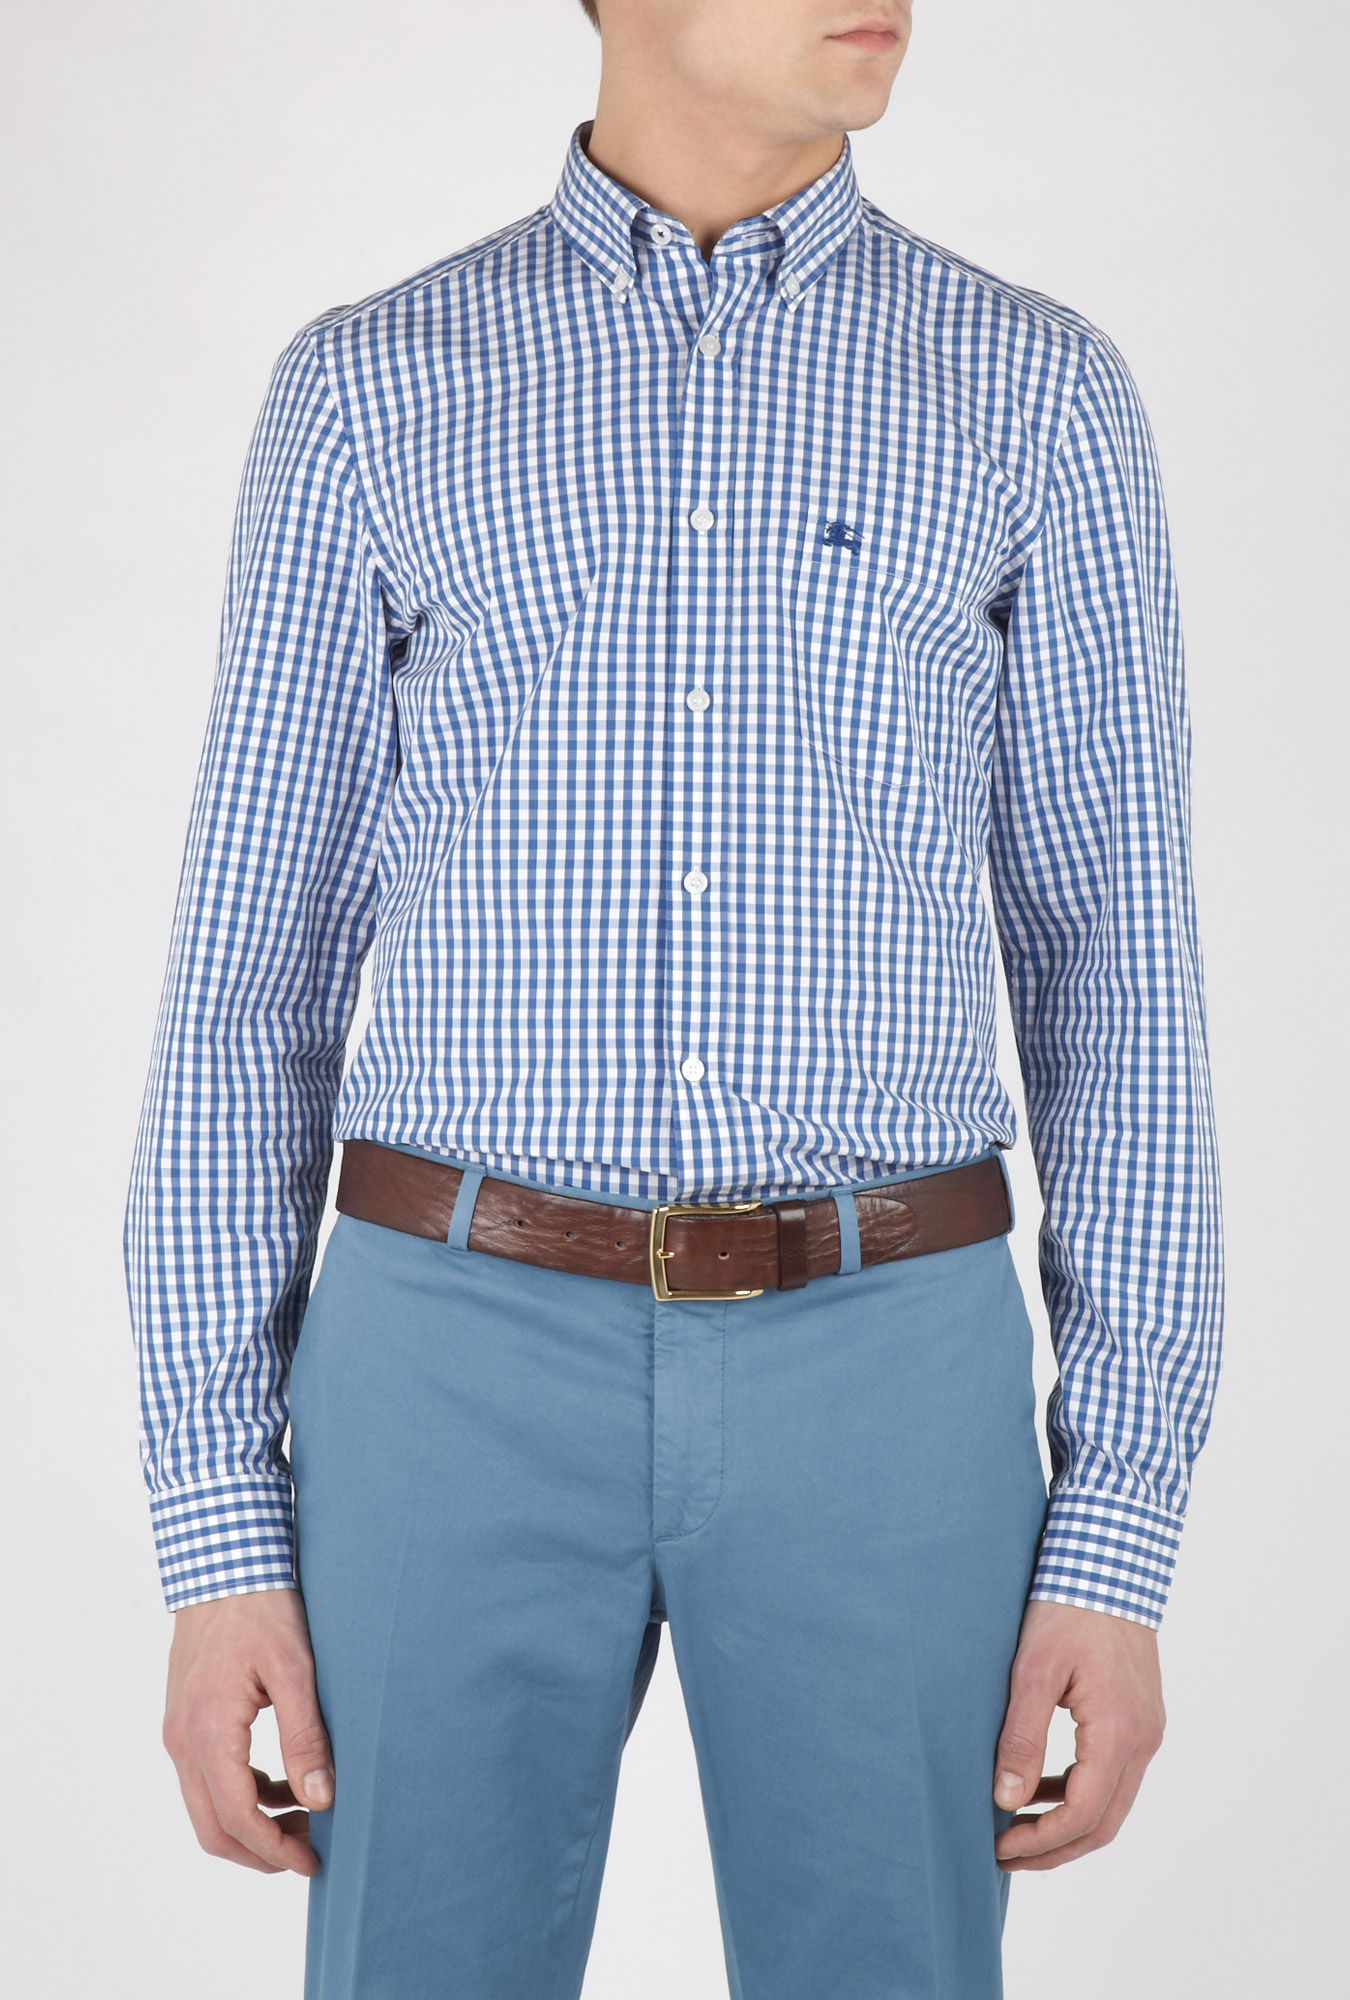 Burberry blue button down gingham shirt in blue for men lyst for Blue gingham button down shirt